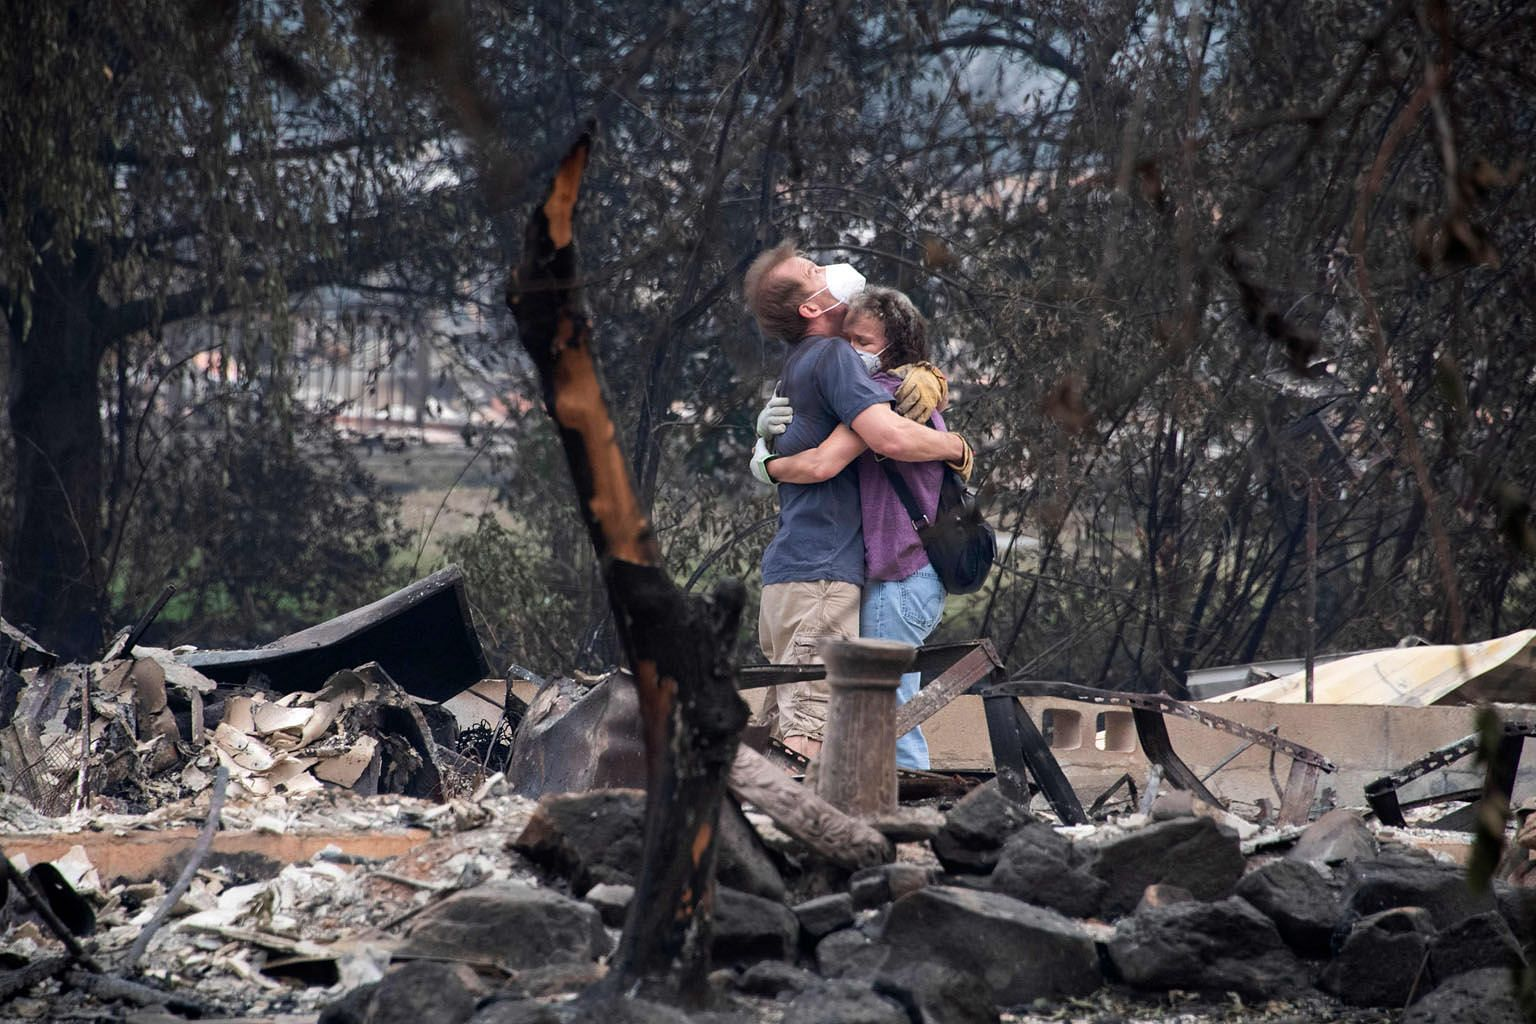 Ms Dee Perez comforting Mr Michael Reynolds at the ruins of his home that was destroyed in the Almeda Fire in Talent, Oregon on Tuesday.